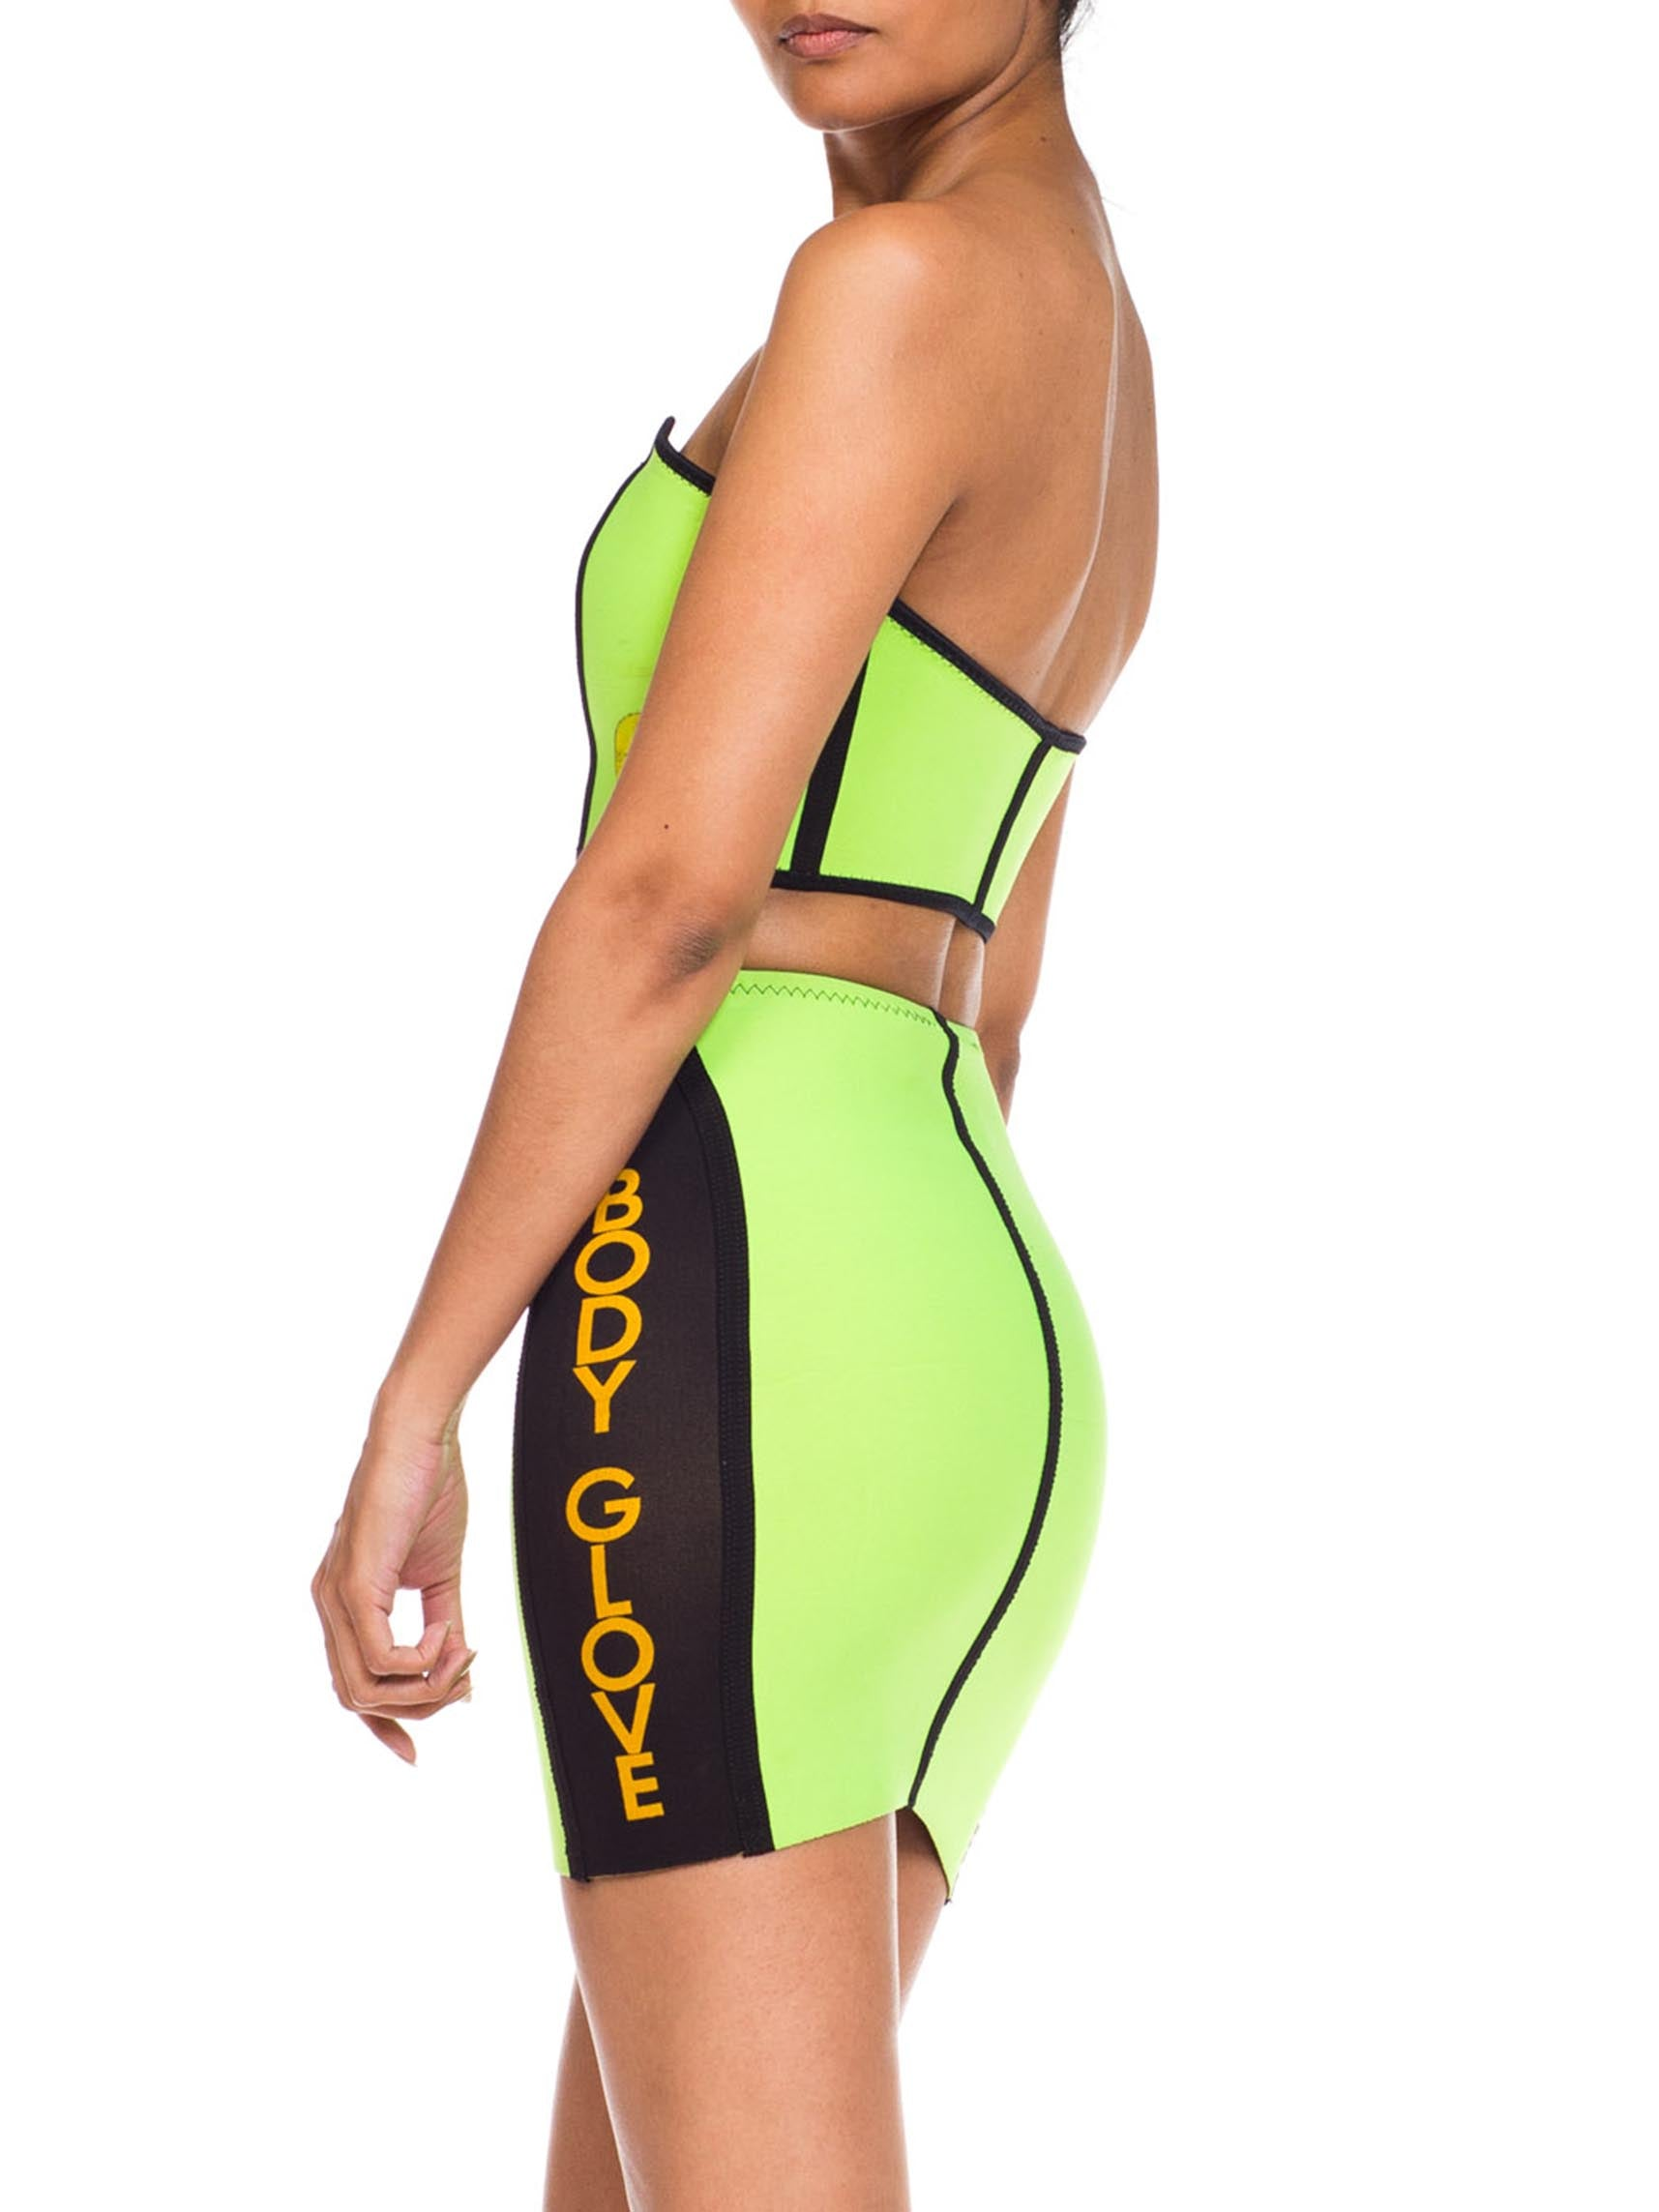 1980S BODYGLOVE Neon Lime Green Neoprene Strapless Zip Up Two Piece Swimsuit